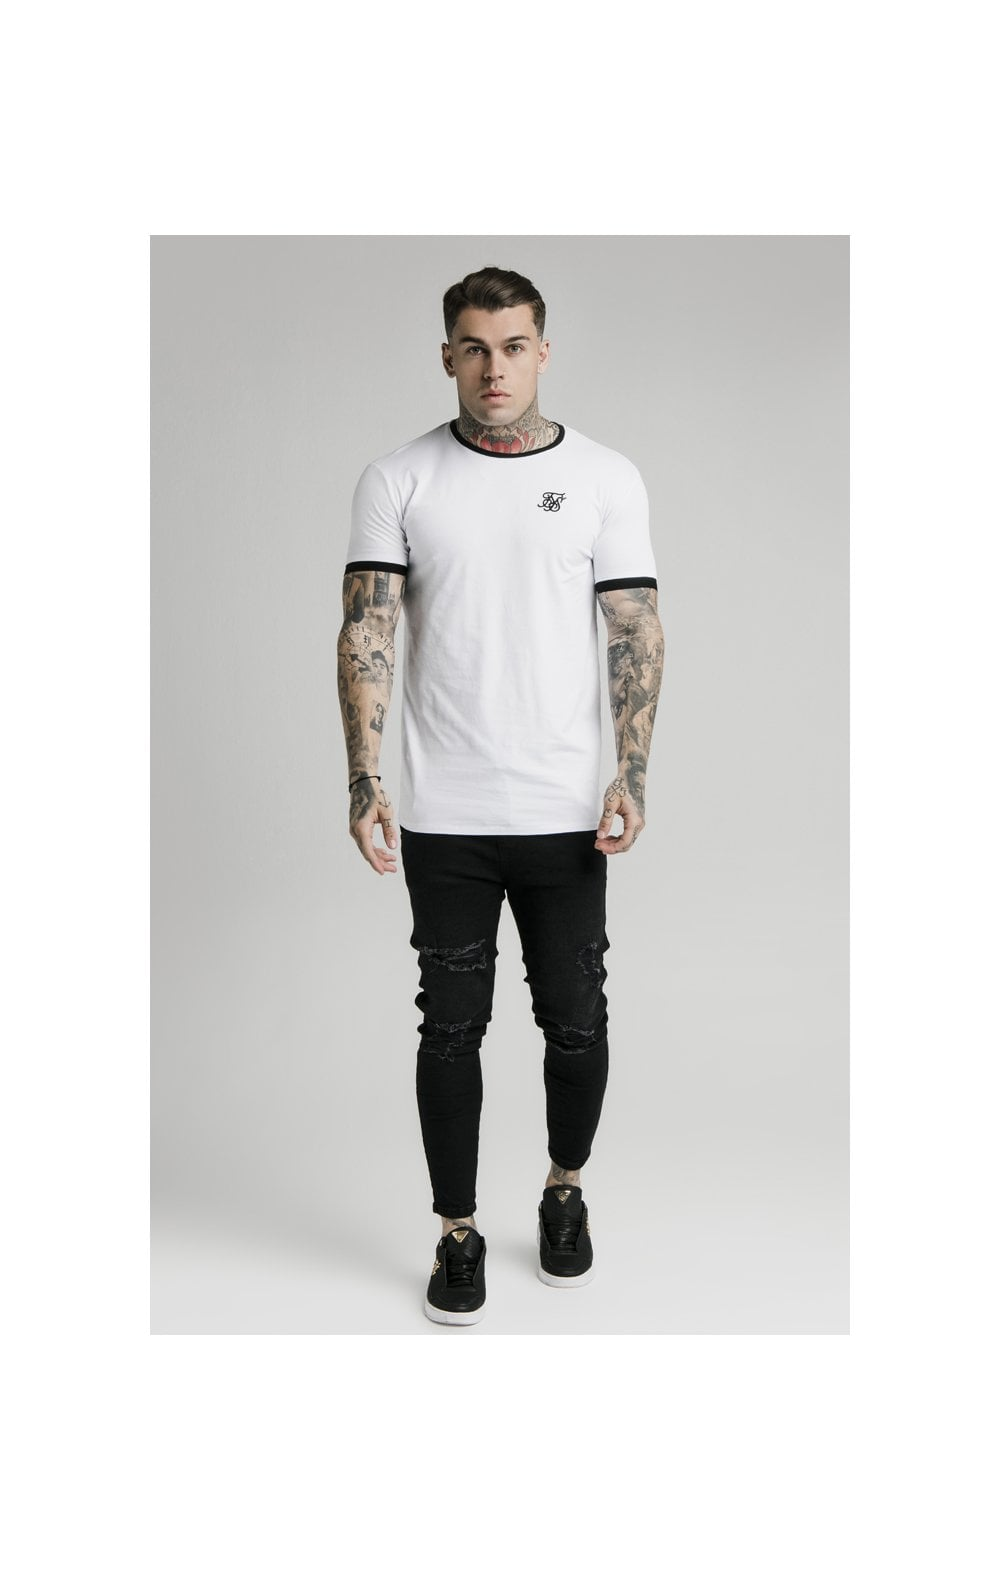 SikSilk S/S Inset Straight Hem Ringer Gym Tee – White (1)